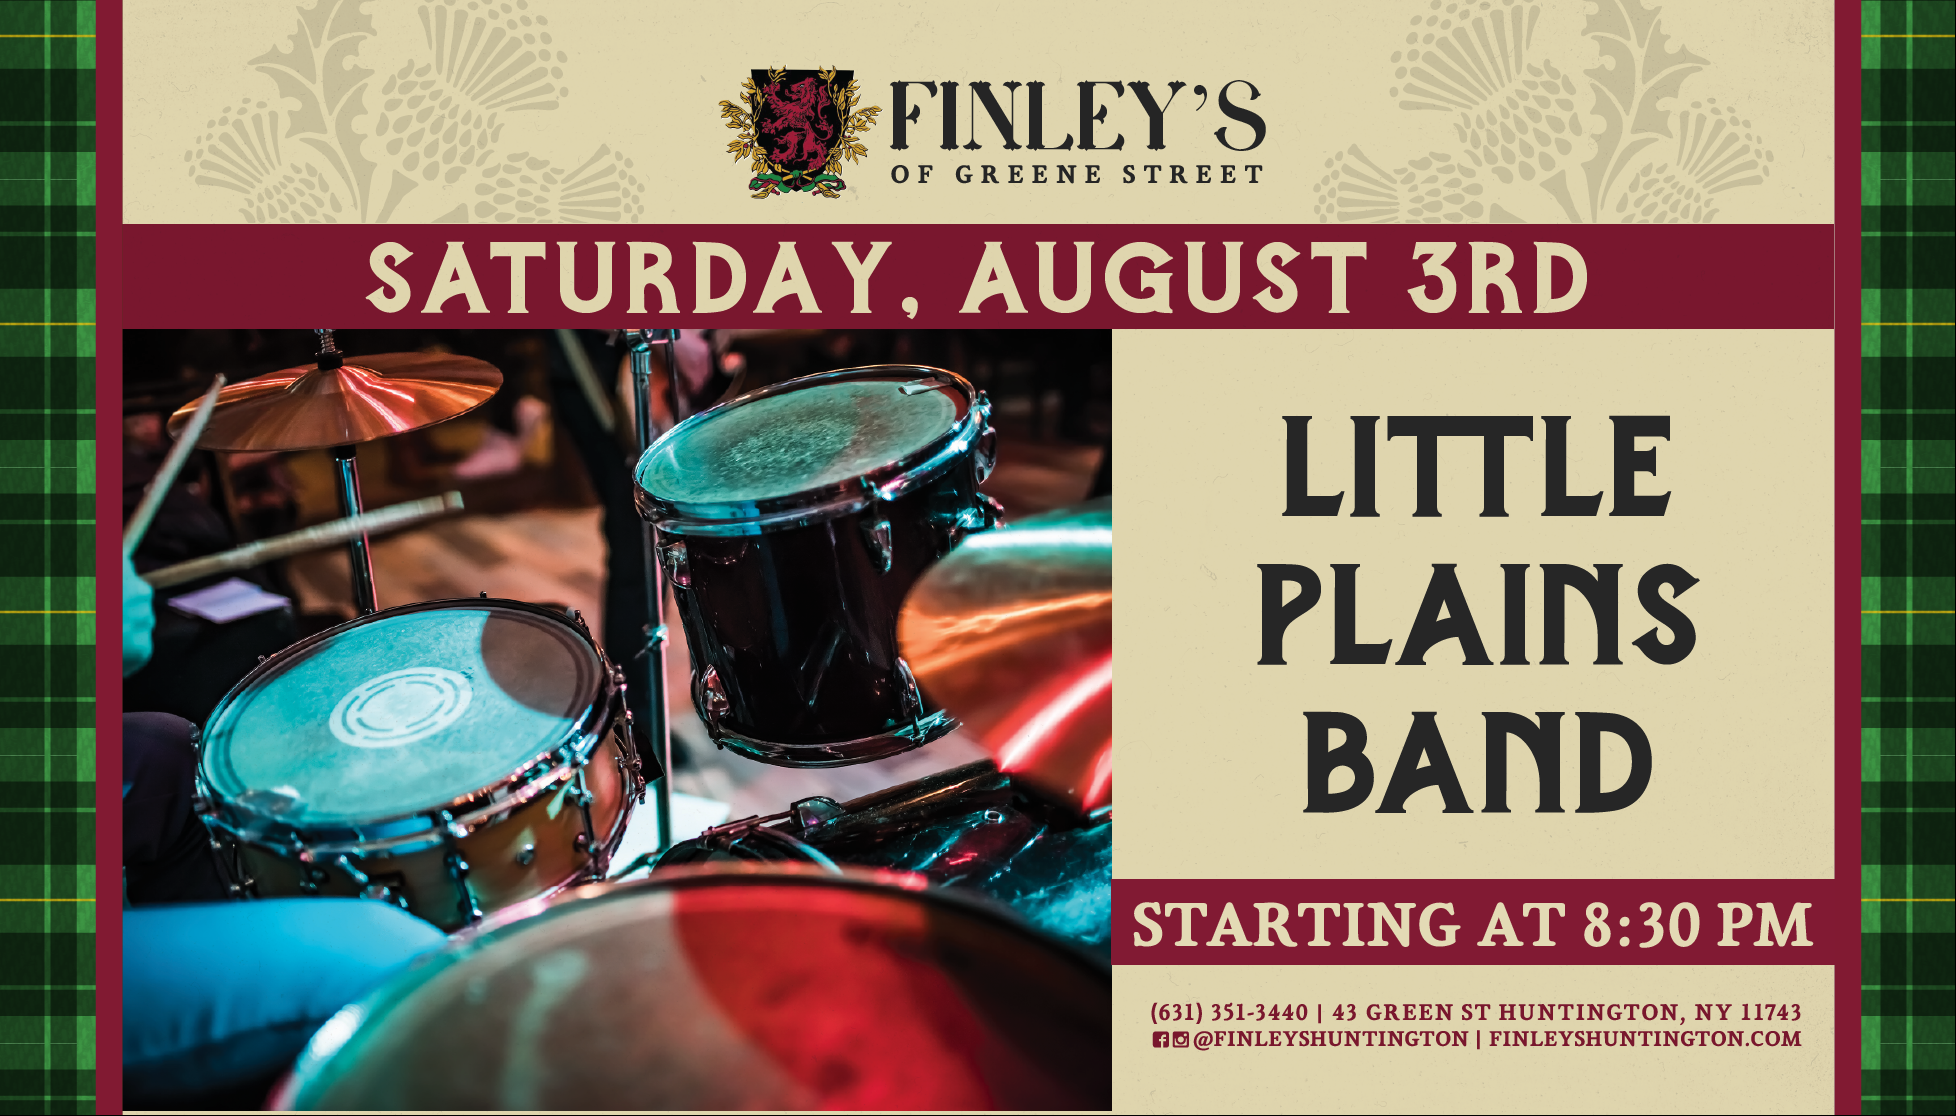 Flyer for live music with Little Plains Band on August 3rd at 8:30pm